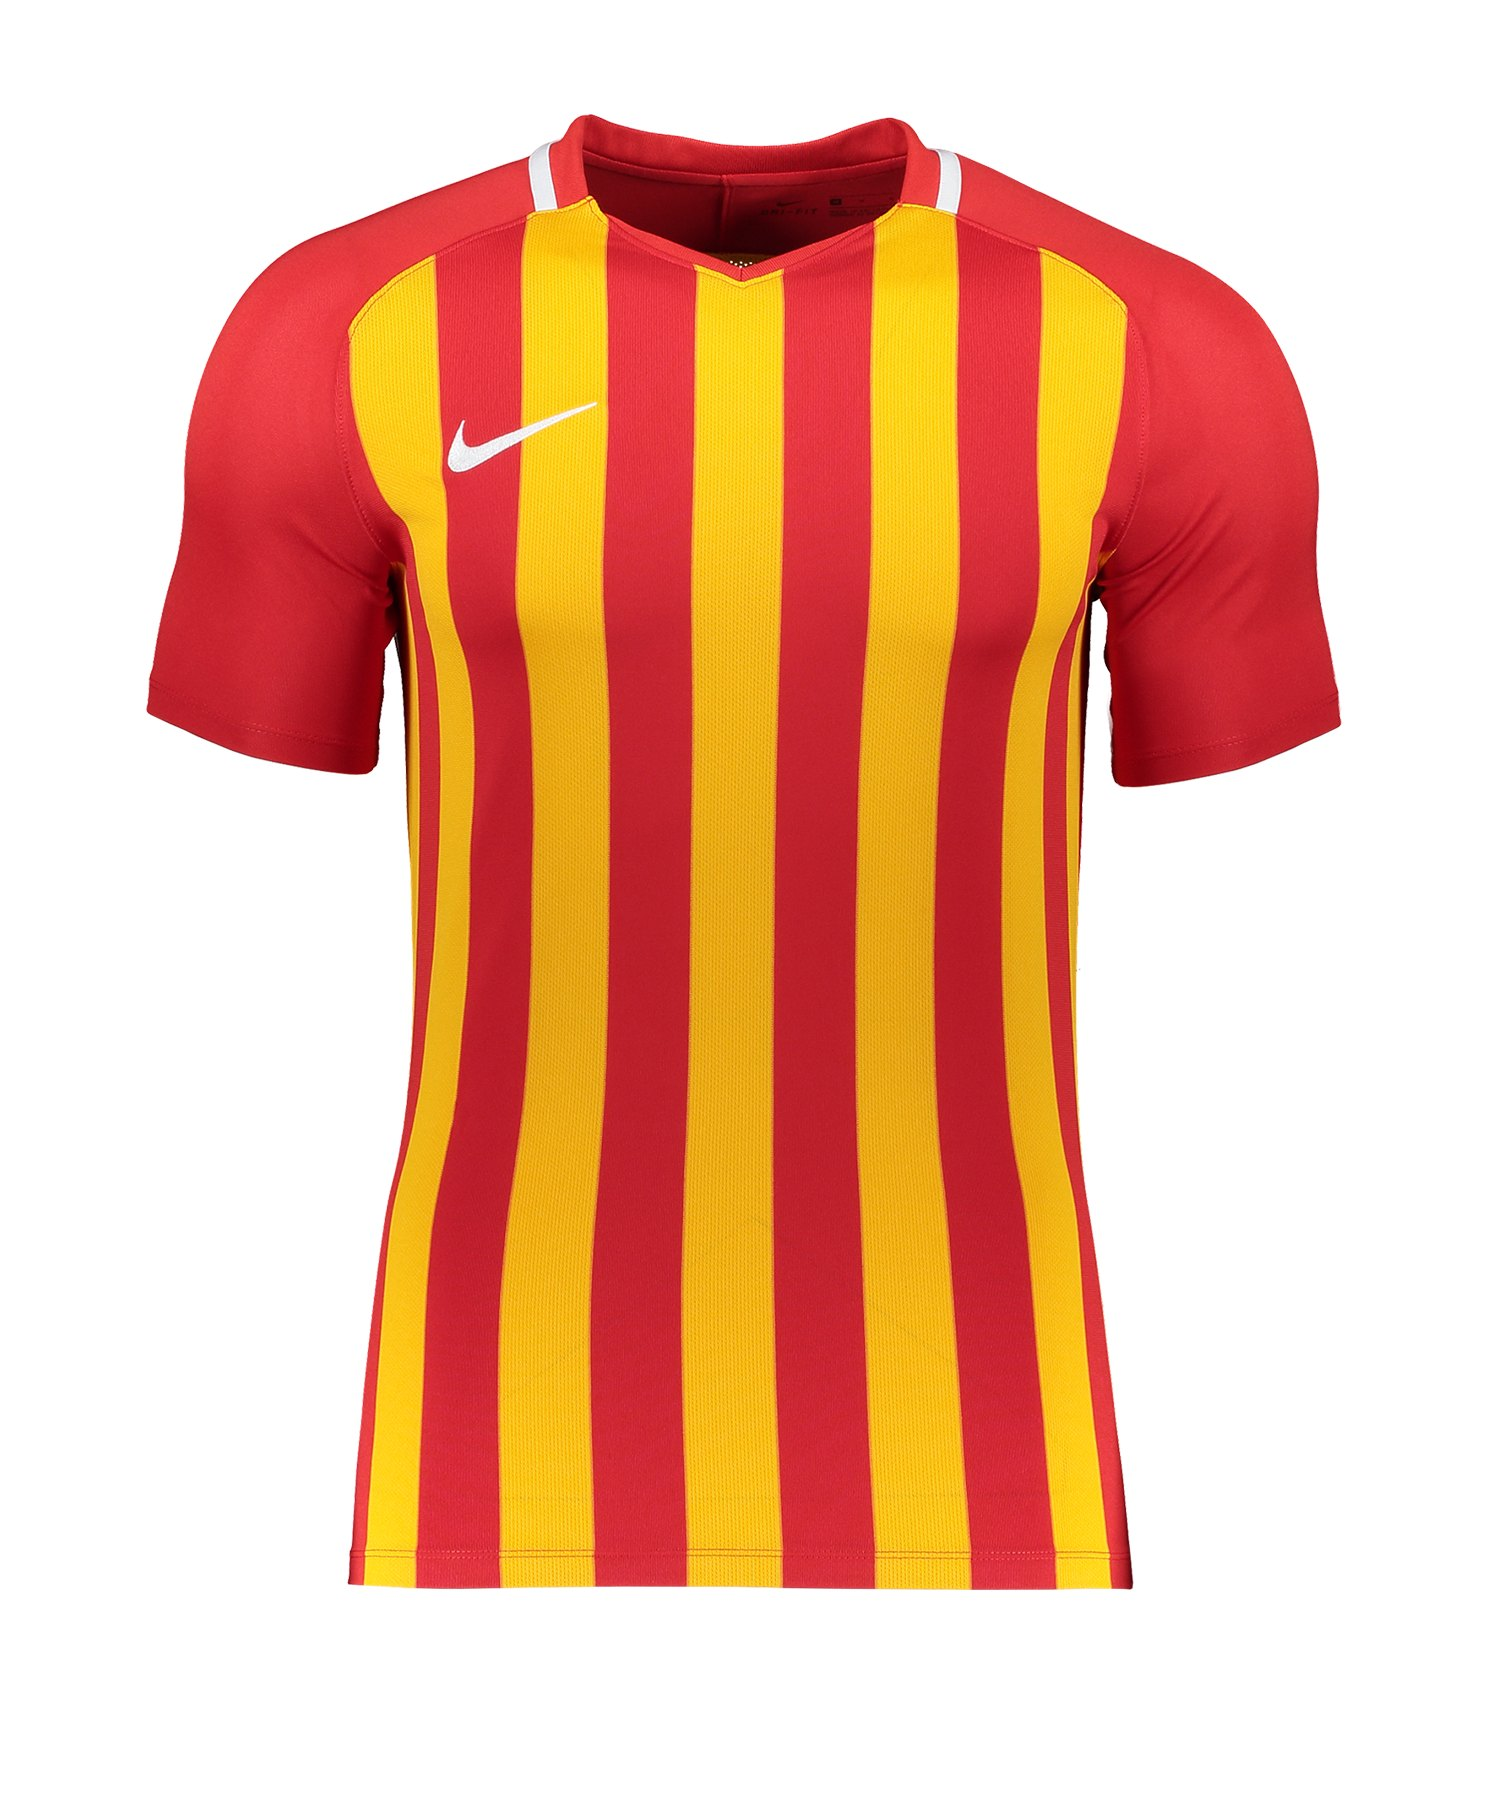 Nike Striped Division III Trikot Rot Gelb F659 - rot